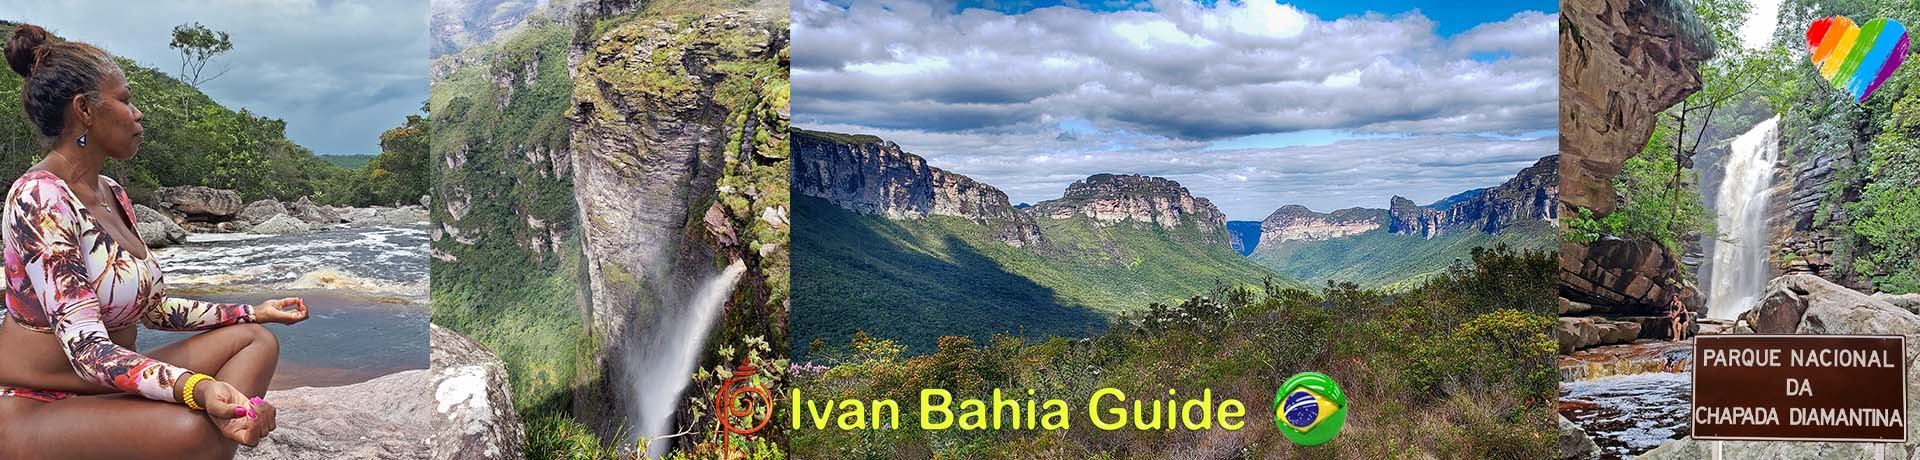 Discover CHapada Diamantina National Park in Bahia (also known as the Brazilian Grand Canyon) with Ivan Bahia tour guide / travel agency - Photography by Ivan Bahia Guide, traveling in Brazil, reisgids in Brazilie, #BahiaMetisse,#FernandoBingre,#SalvadorFoto,#SalvadorBahiaBrazil,SalvadorBahiaTourism,#IvanBahiaGuide,#IvanSalvadorBahia,#SalvadorBahiaTravel,#ToursByLocals